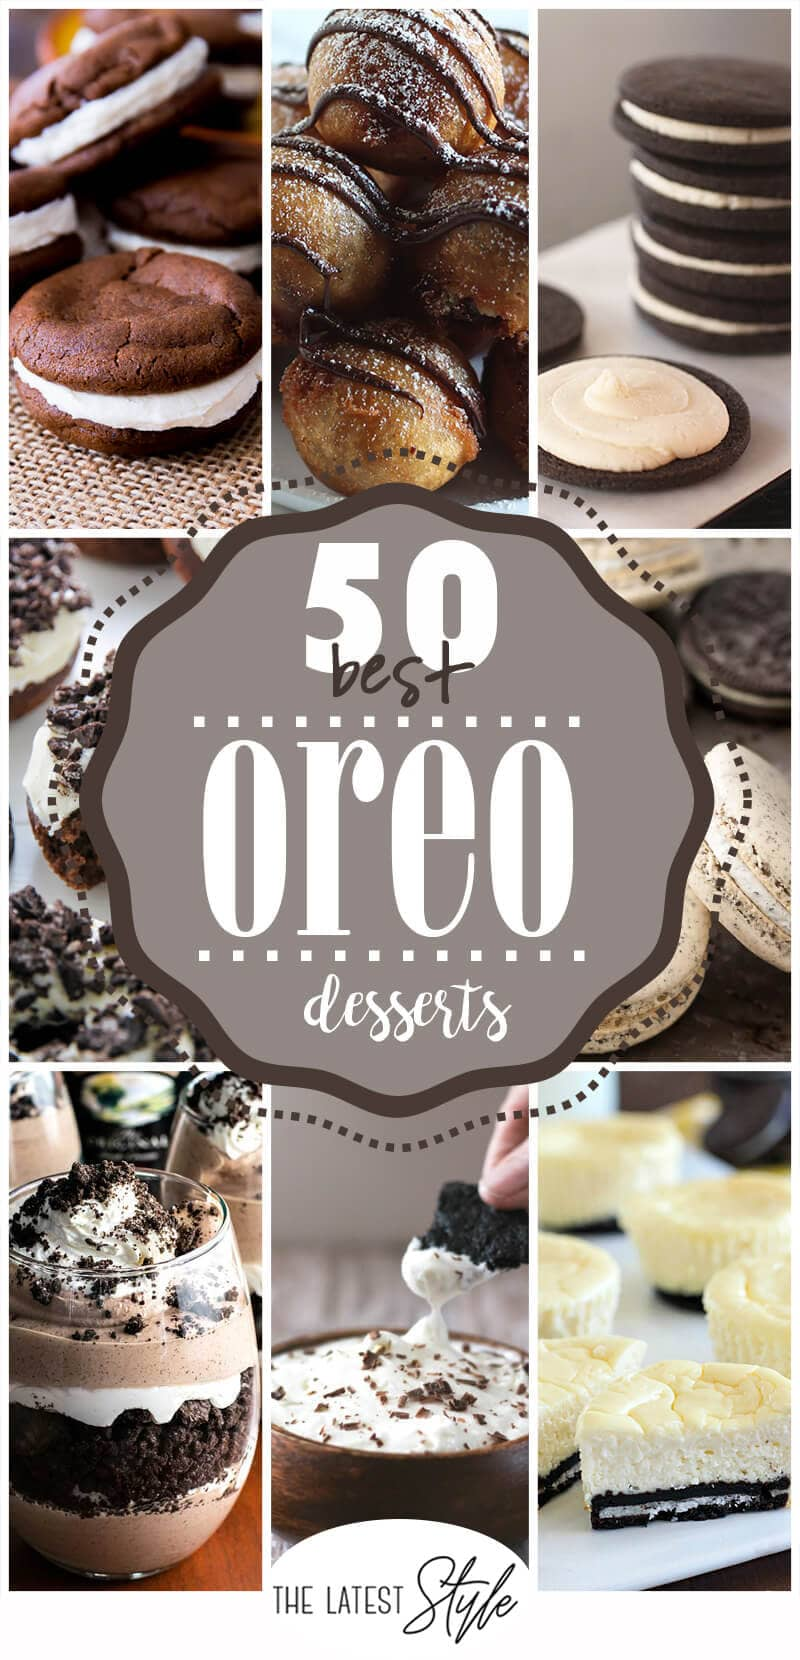 50 Heavenly Oreo Dessert Recipes that You can't Live Without